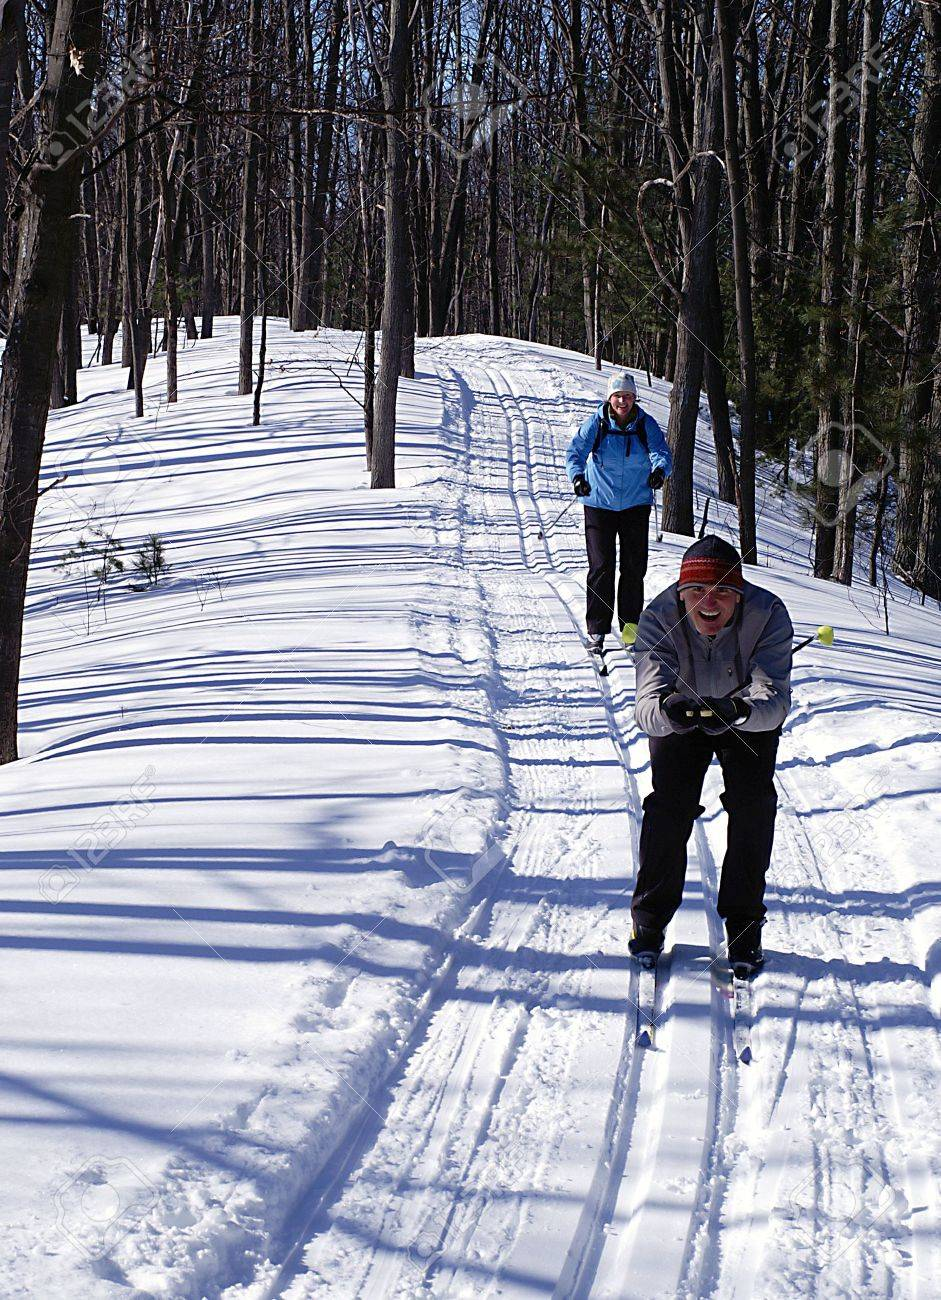 Active Boomers on the nordic ski trails in Wasaga Beach, Ontario. - 2685406